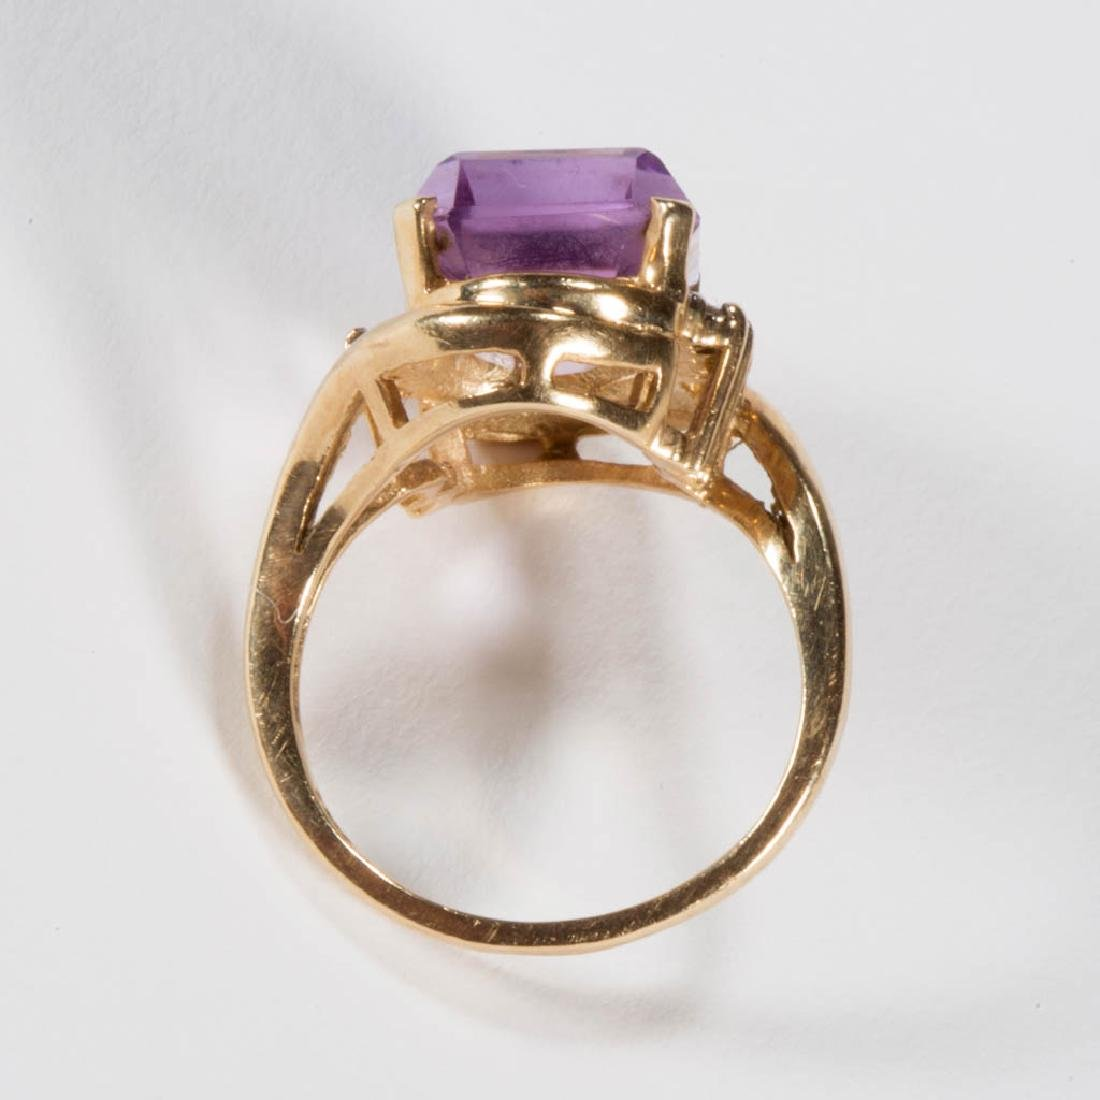 VINTAGE 14K GOLD AND AMETHYST LADY'S RING - 3